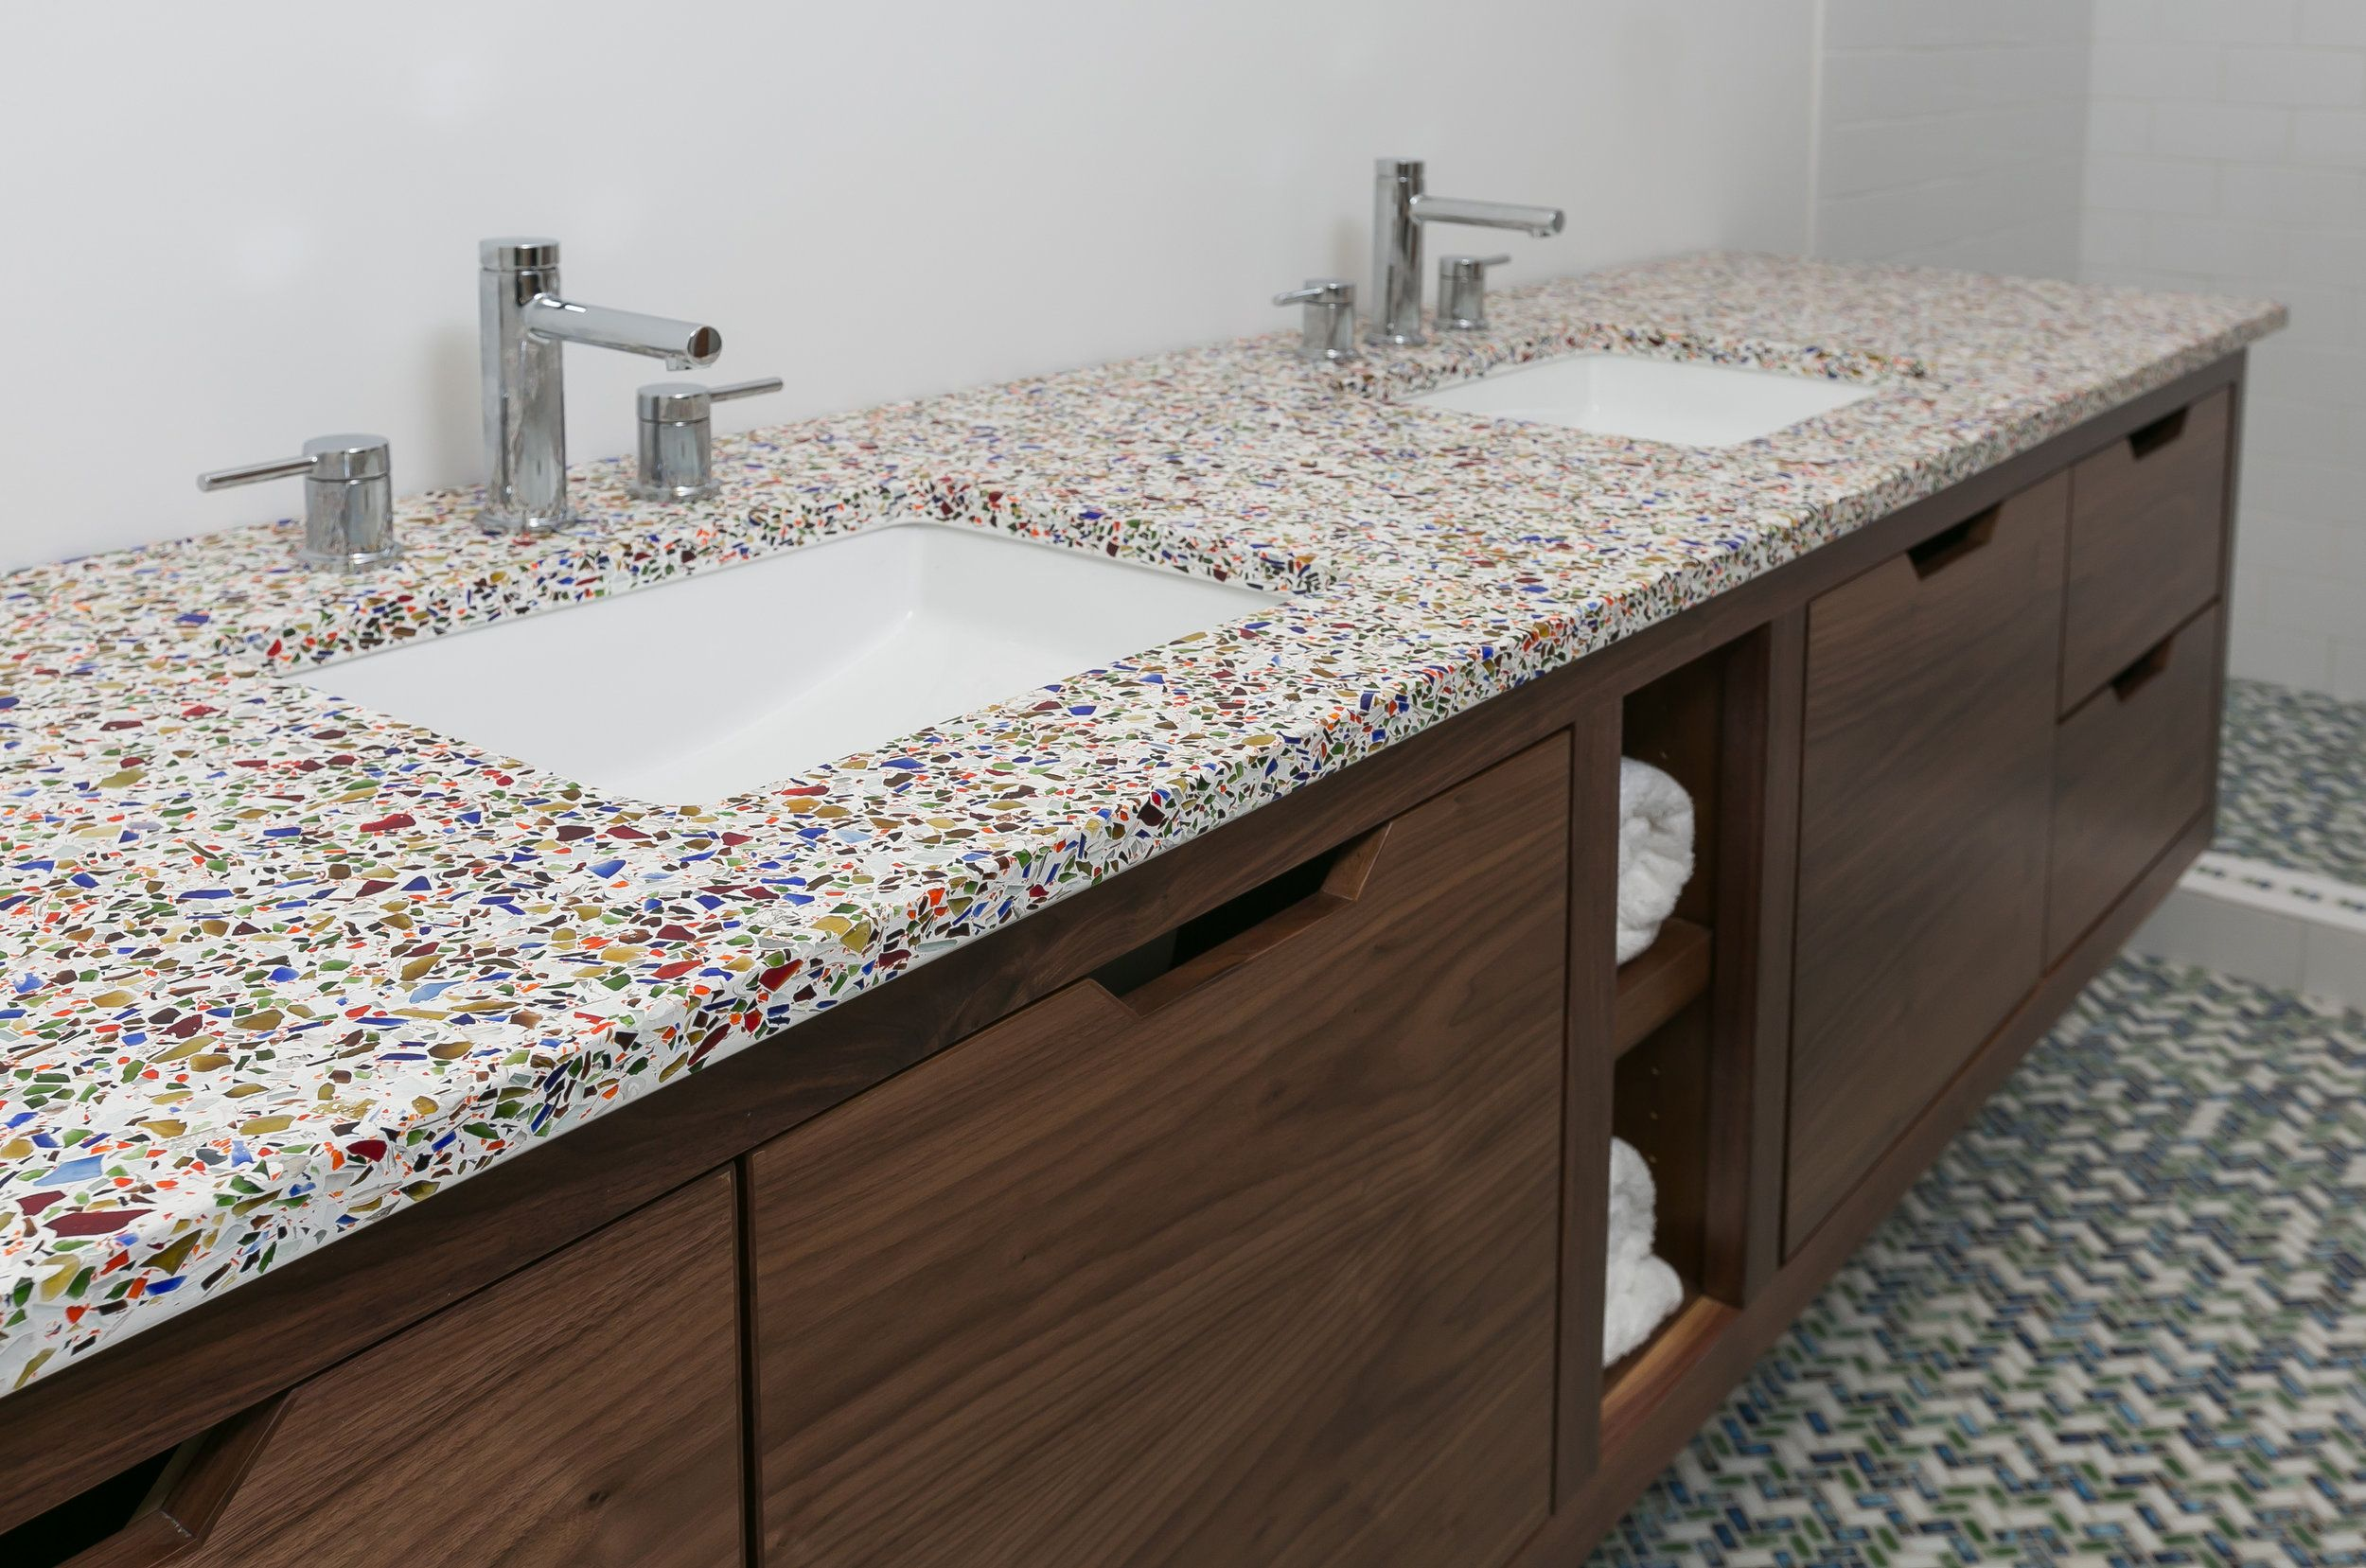 Confetti Bathroom Vanity By Gleco This Colorful Countertop Was Made With 100 Recycled Gl North Charleston Scgl